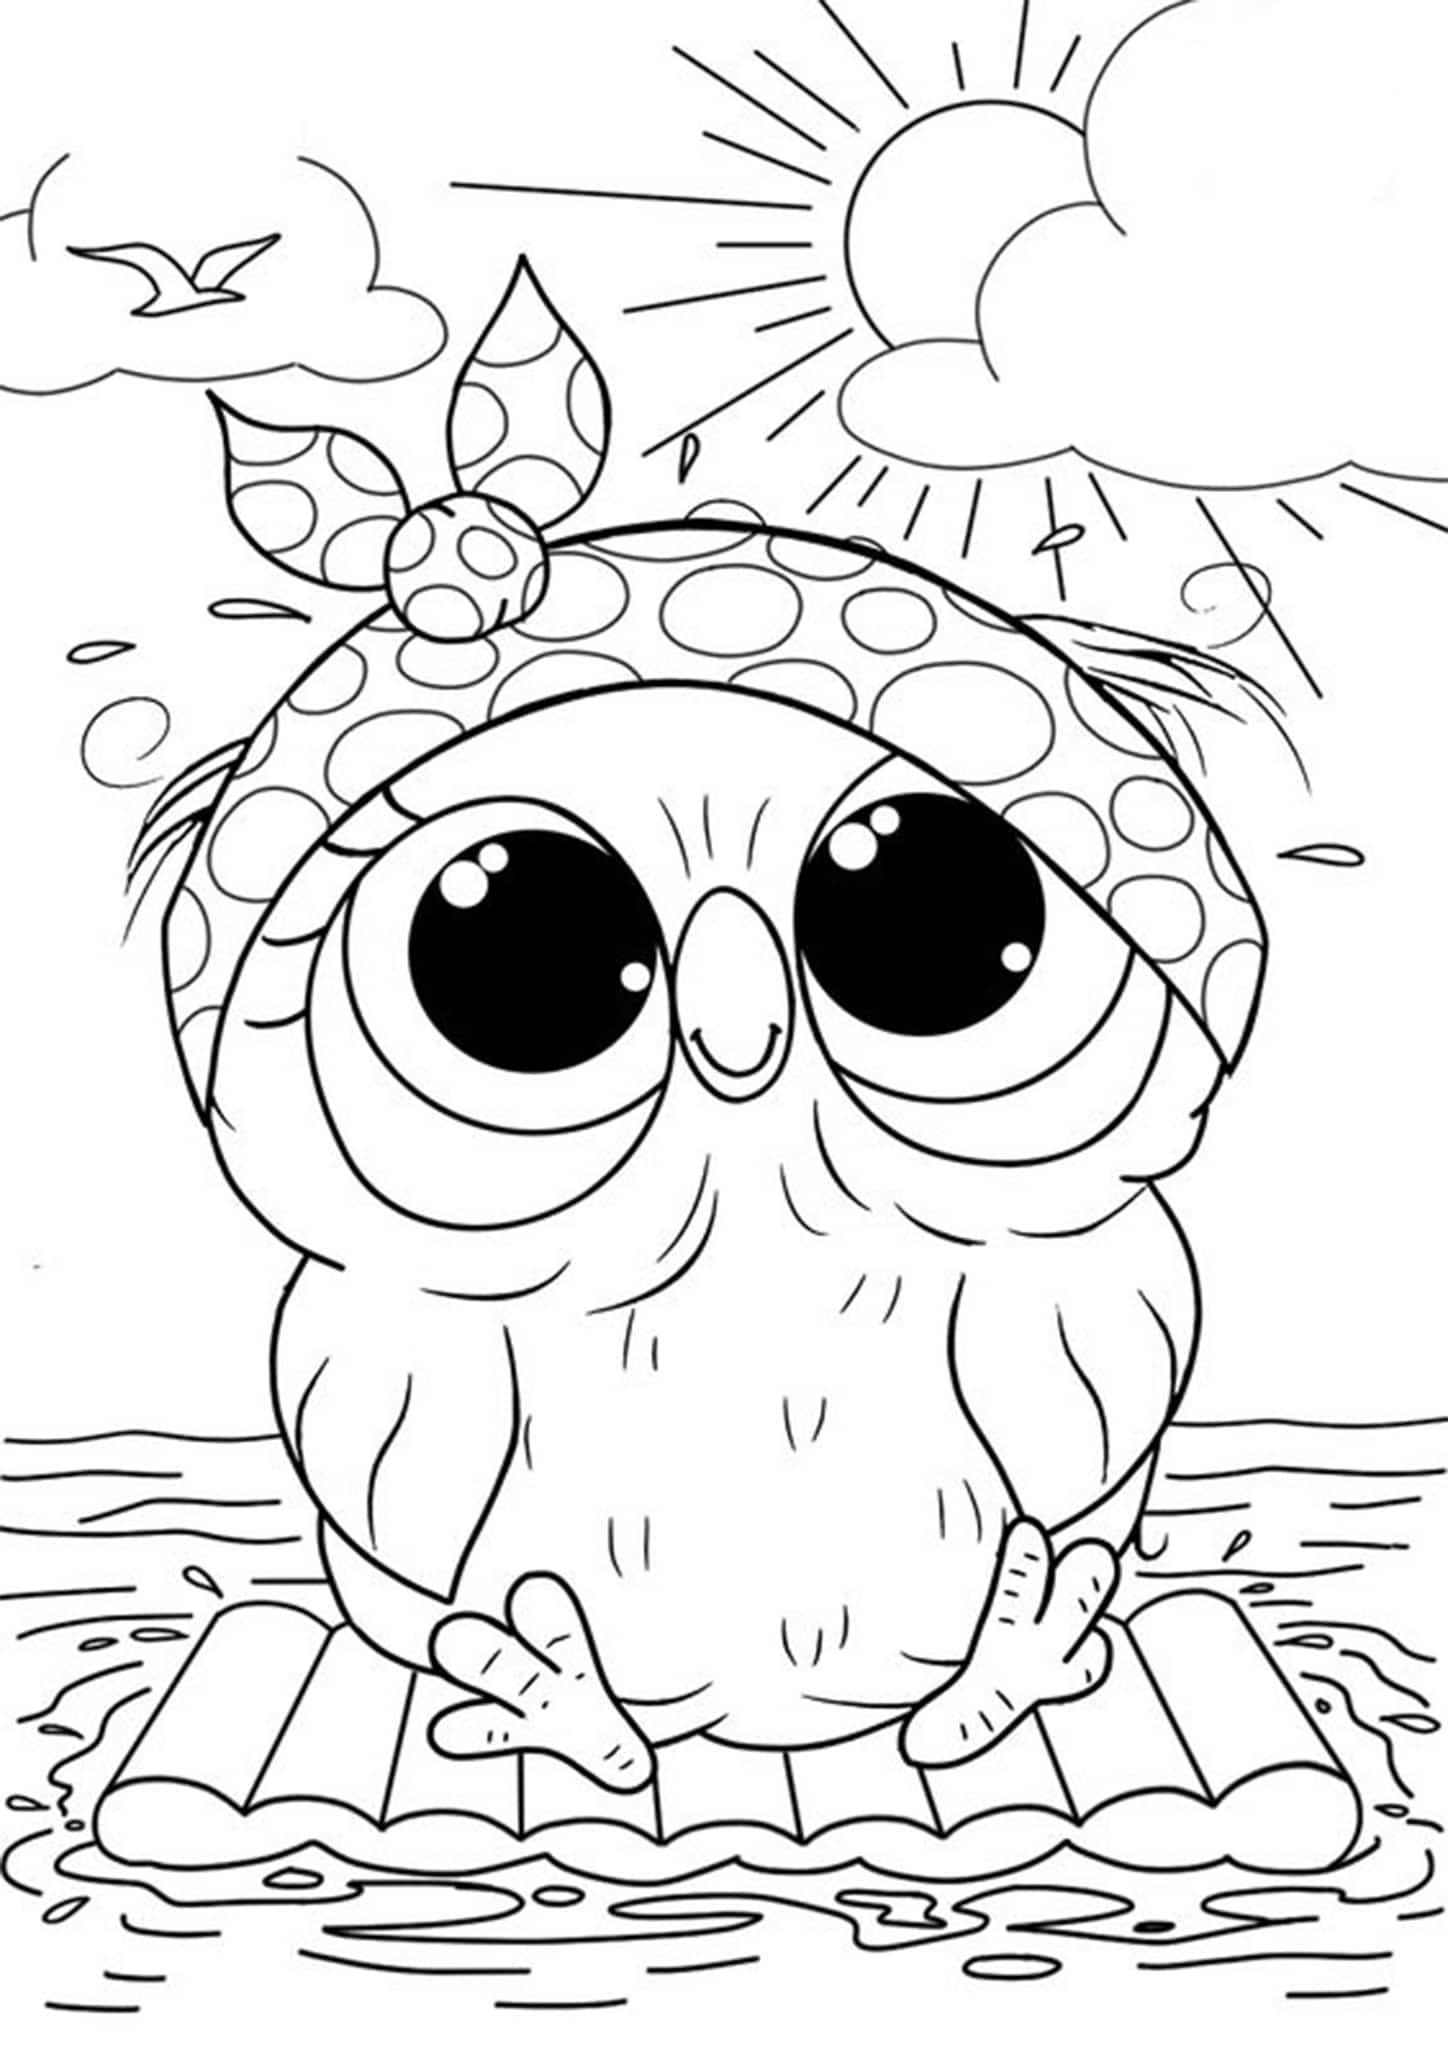 owl color sheets barred owl coloring pages print coloring 2019 color sheets owl